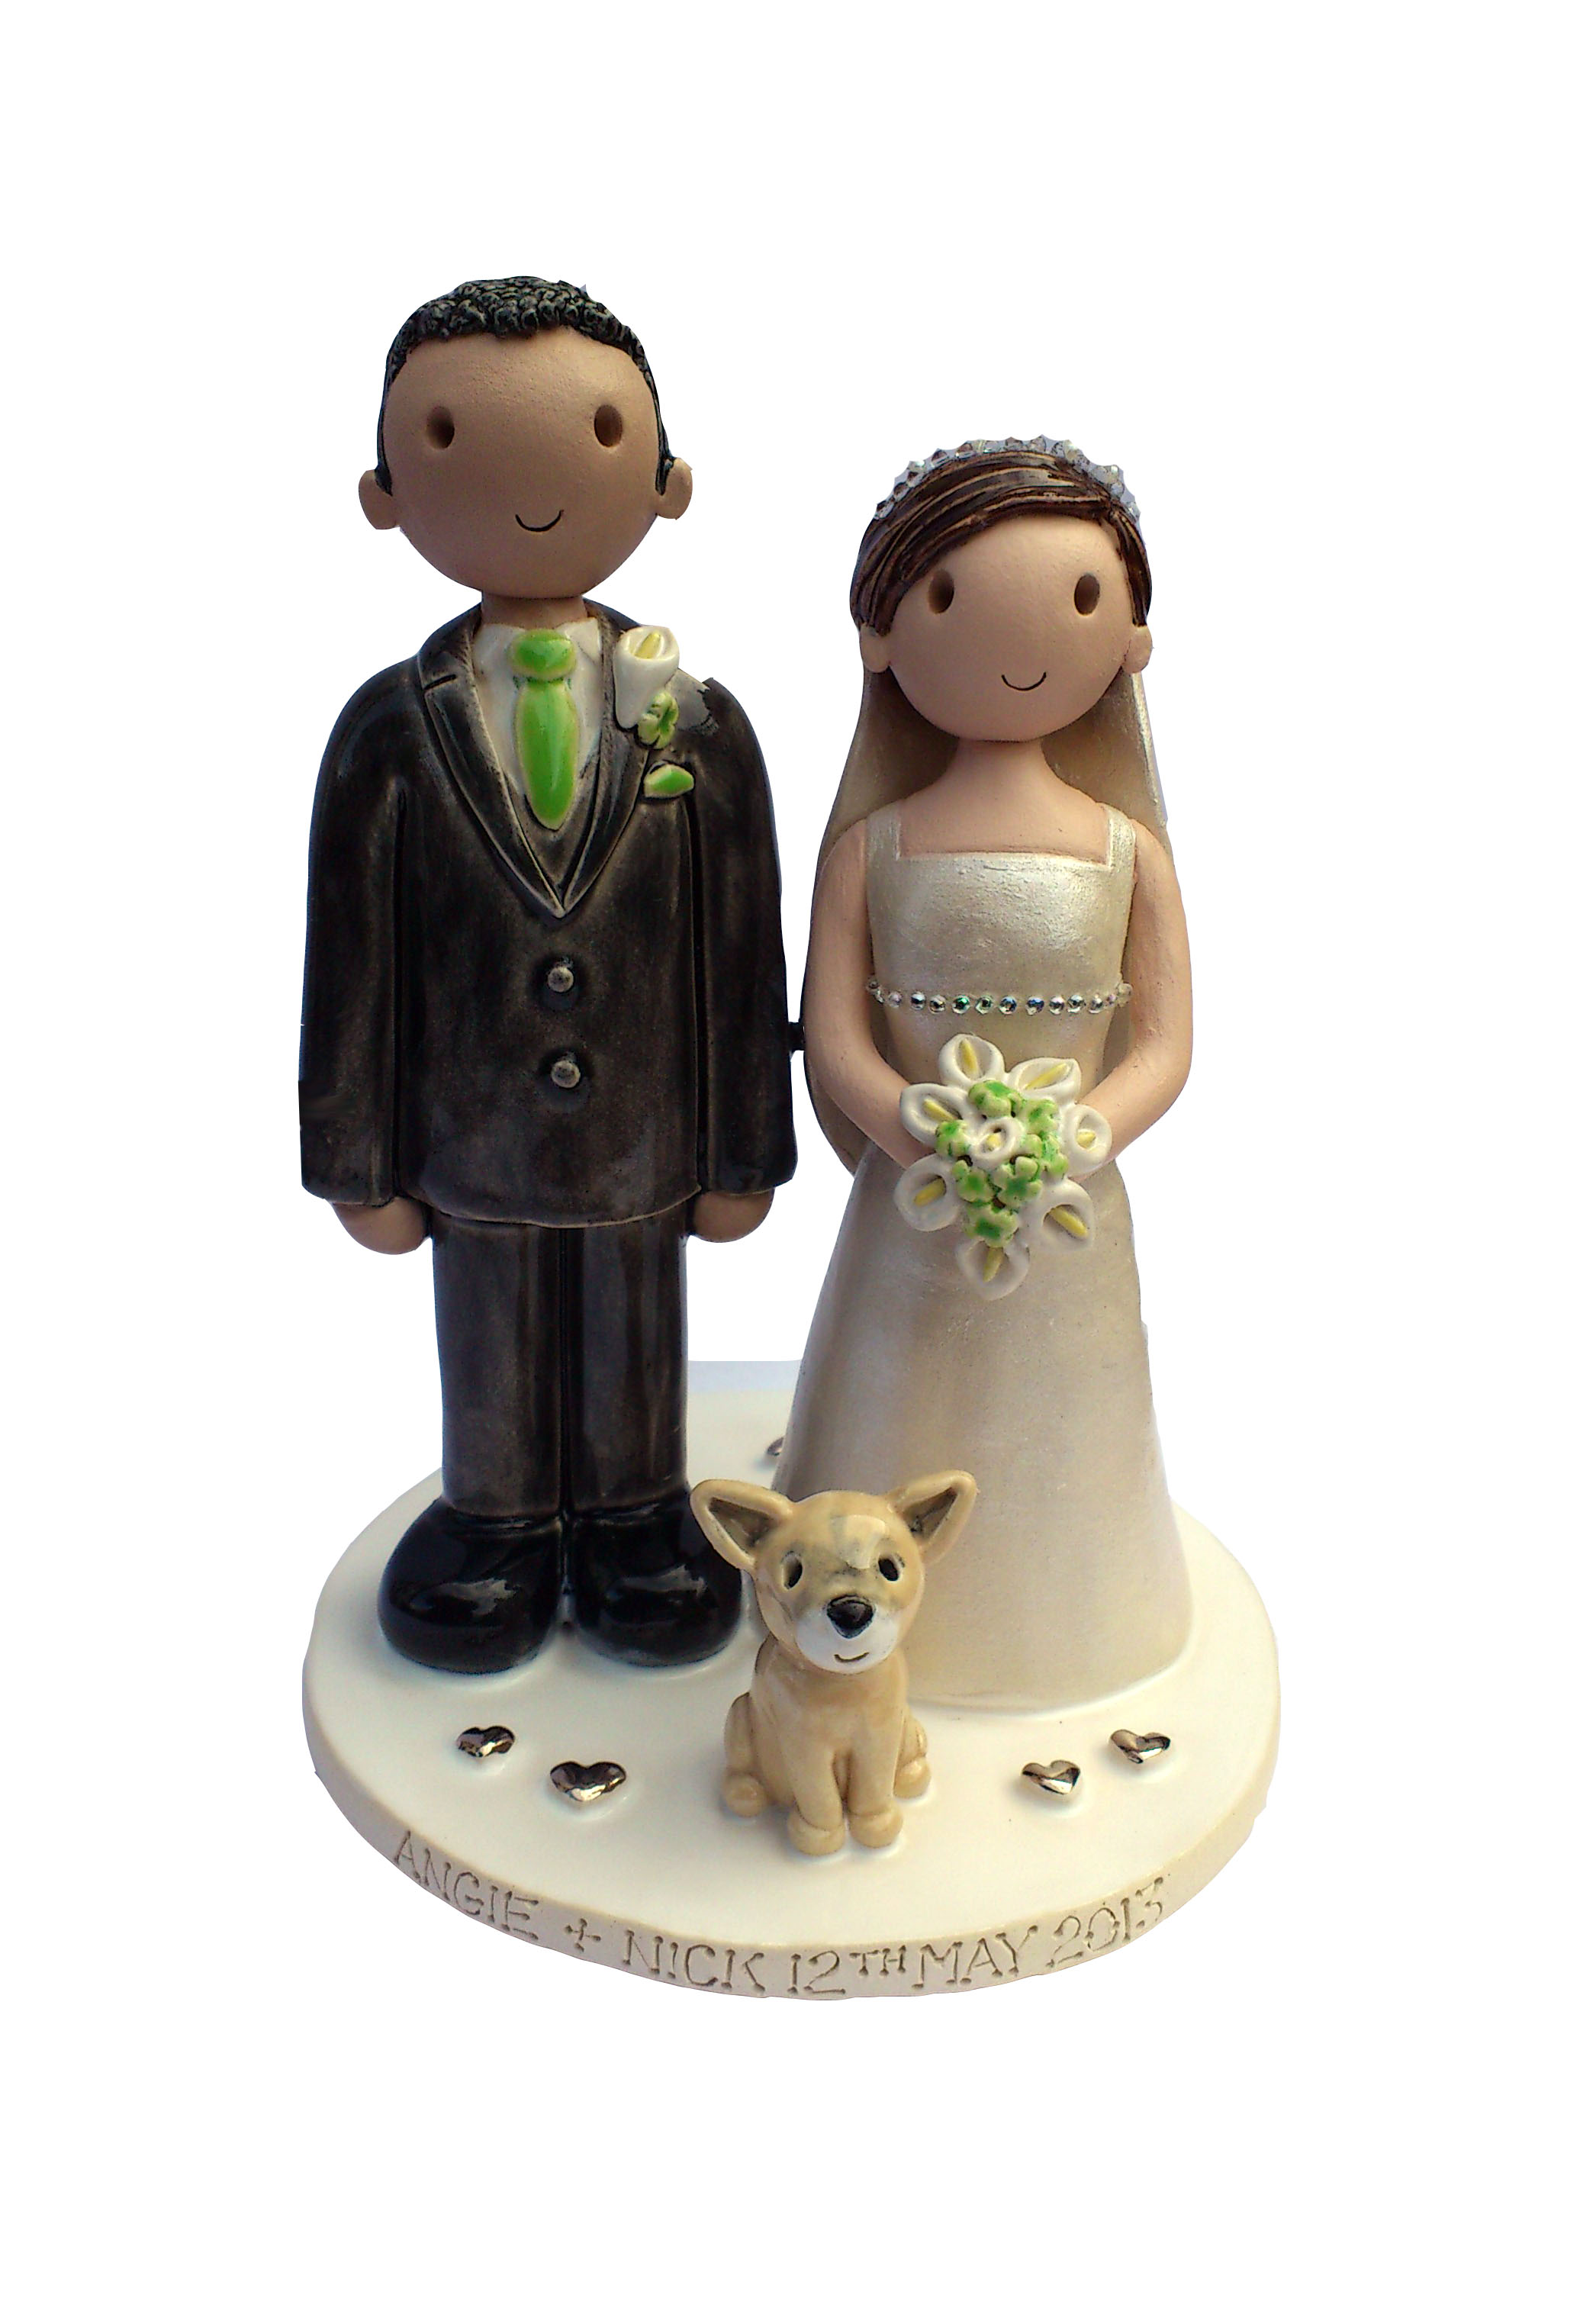 Cake Toppers In Uk : Wedding Cake Toppers Gallery. Personalised Cake Topper ...